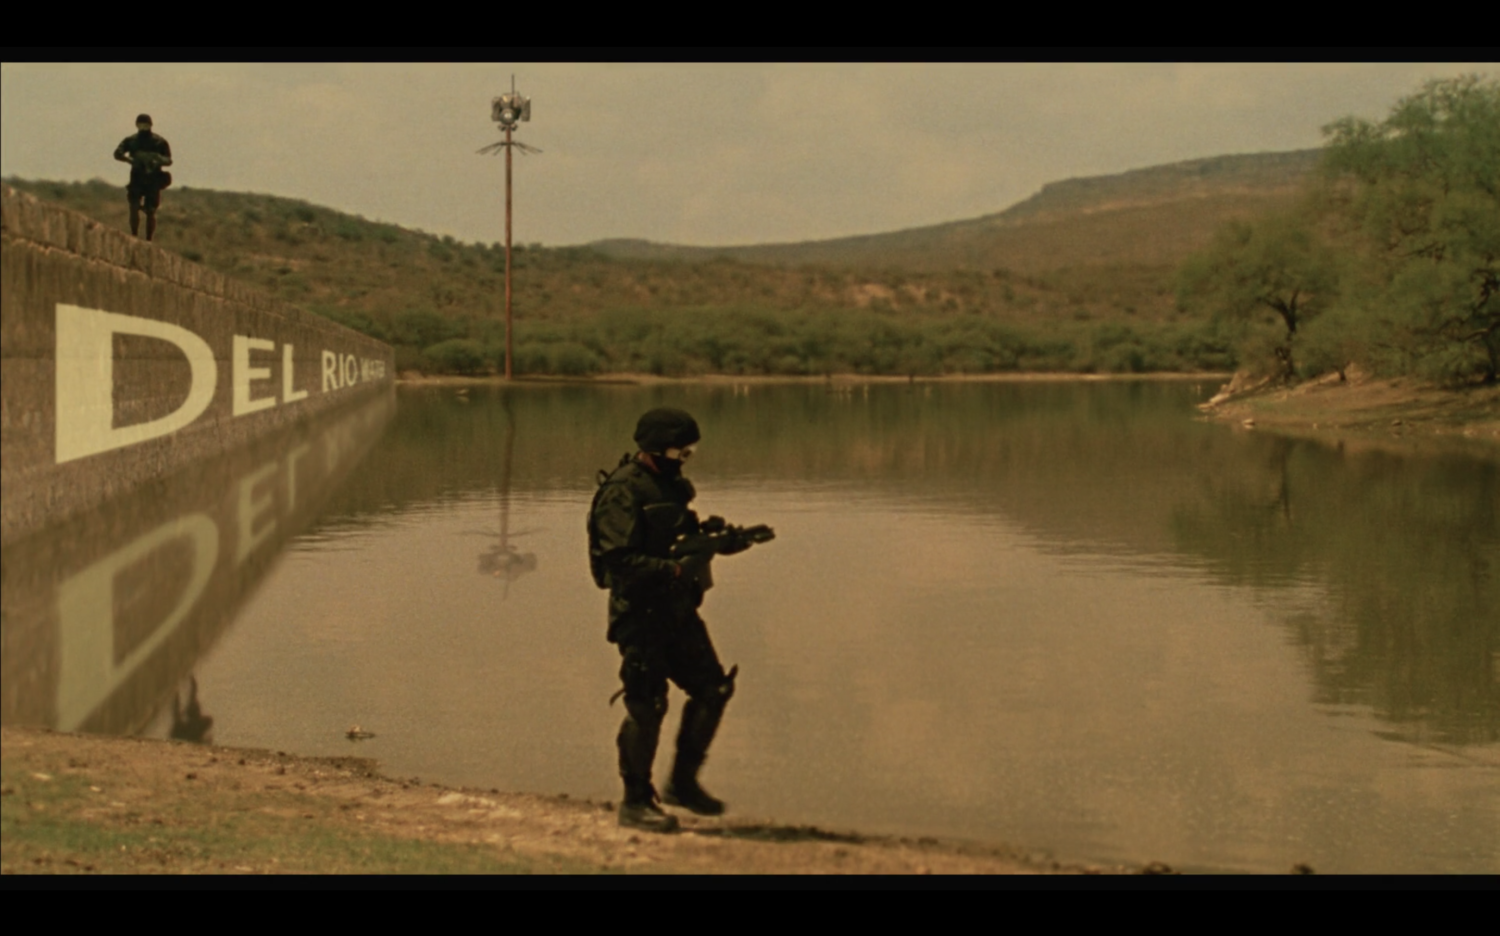 Figure 2. Weaponized police guard Del Rio Water. Screenshot by the author.